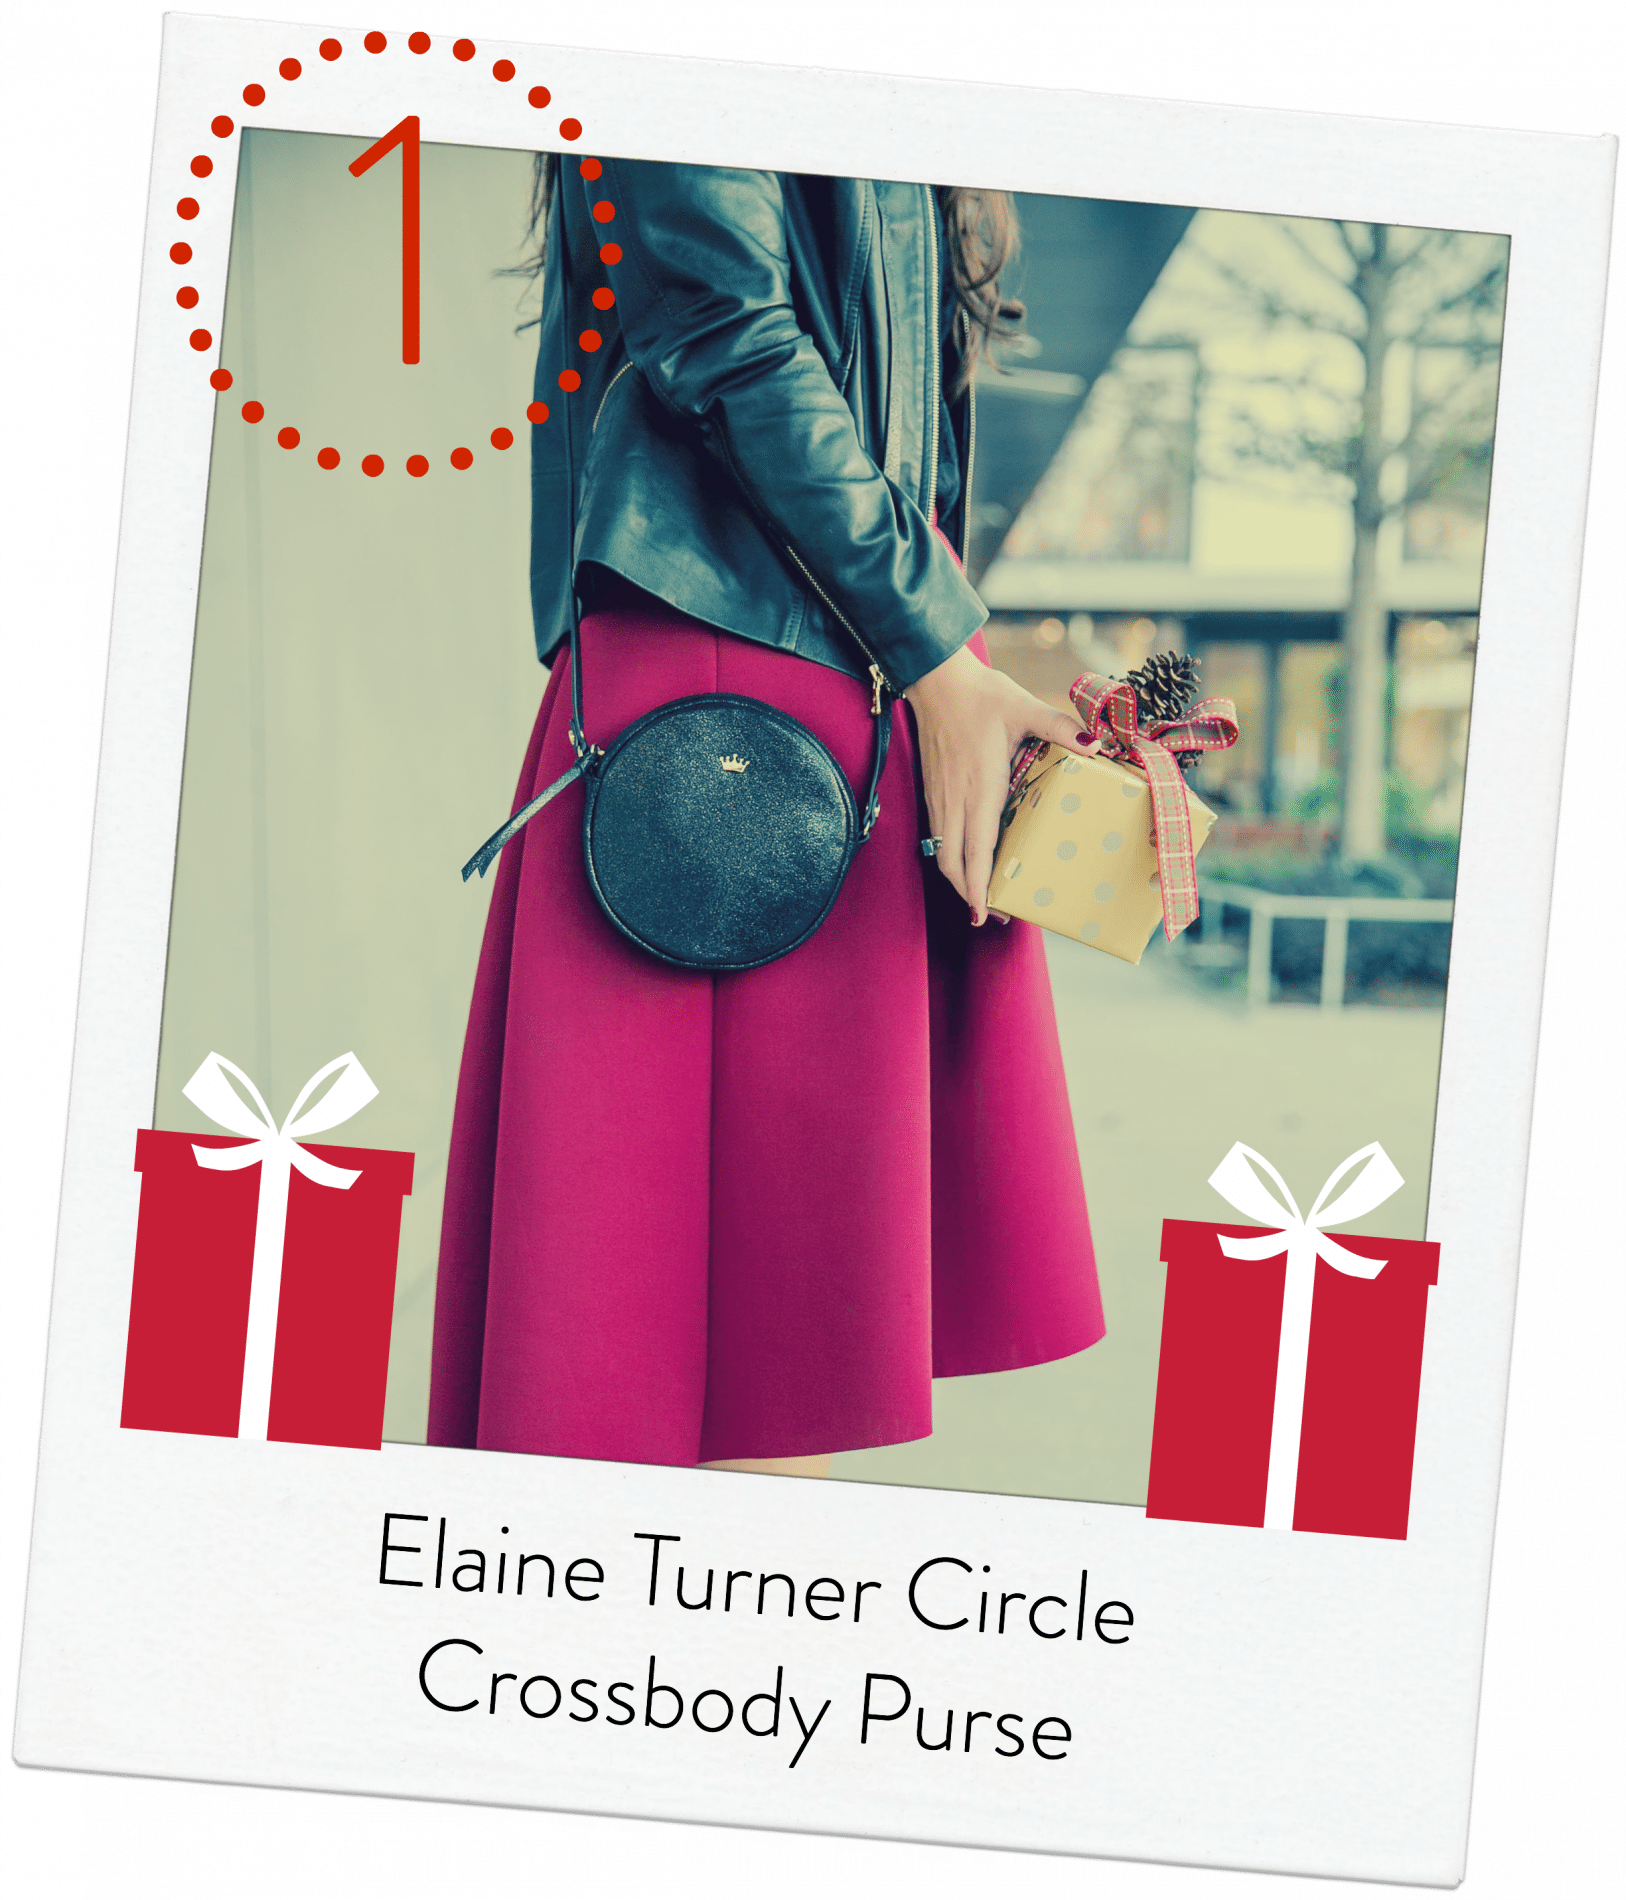 Elaine Turner Circle Crossbody purse